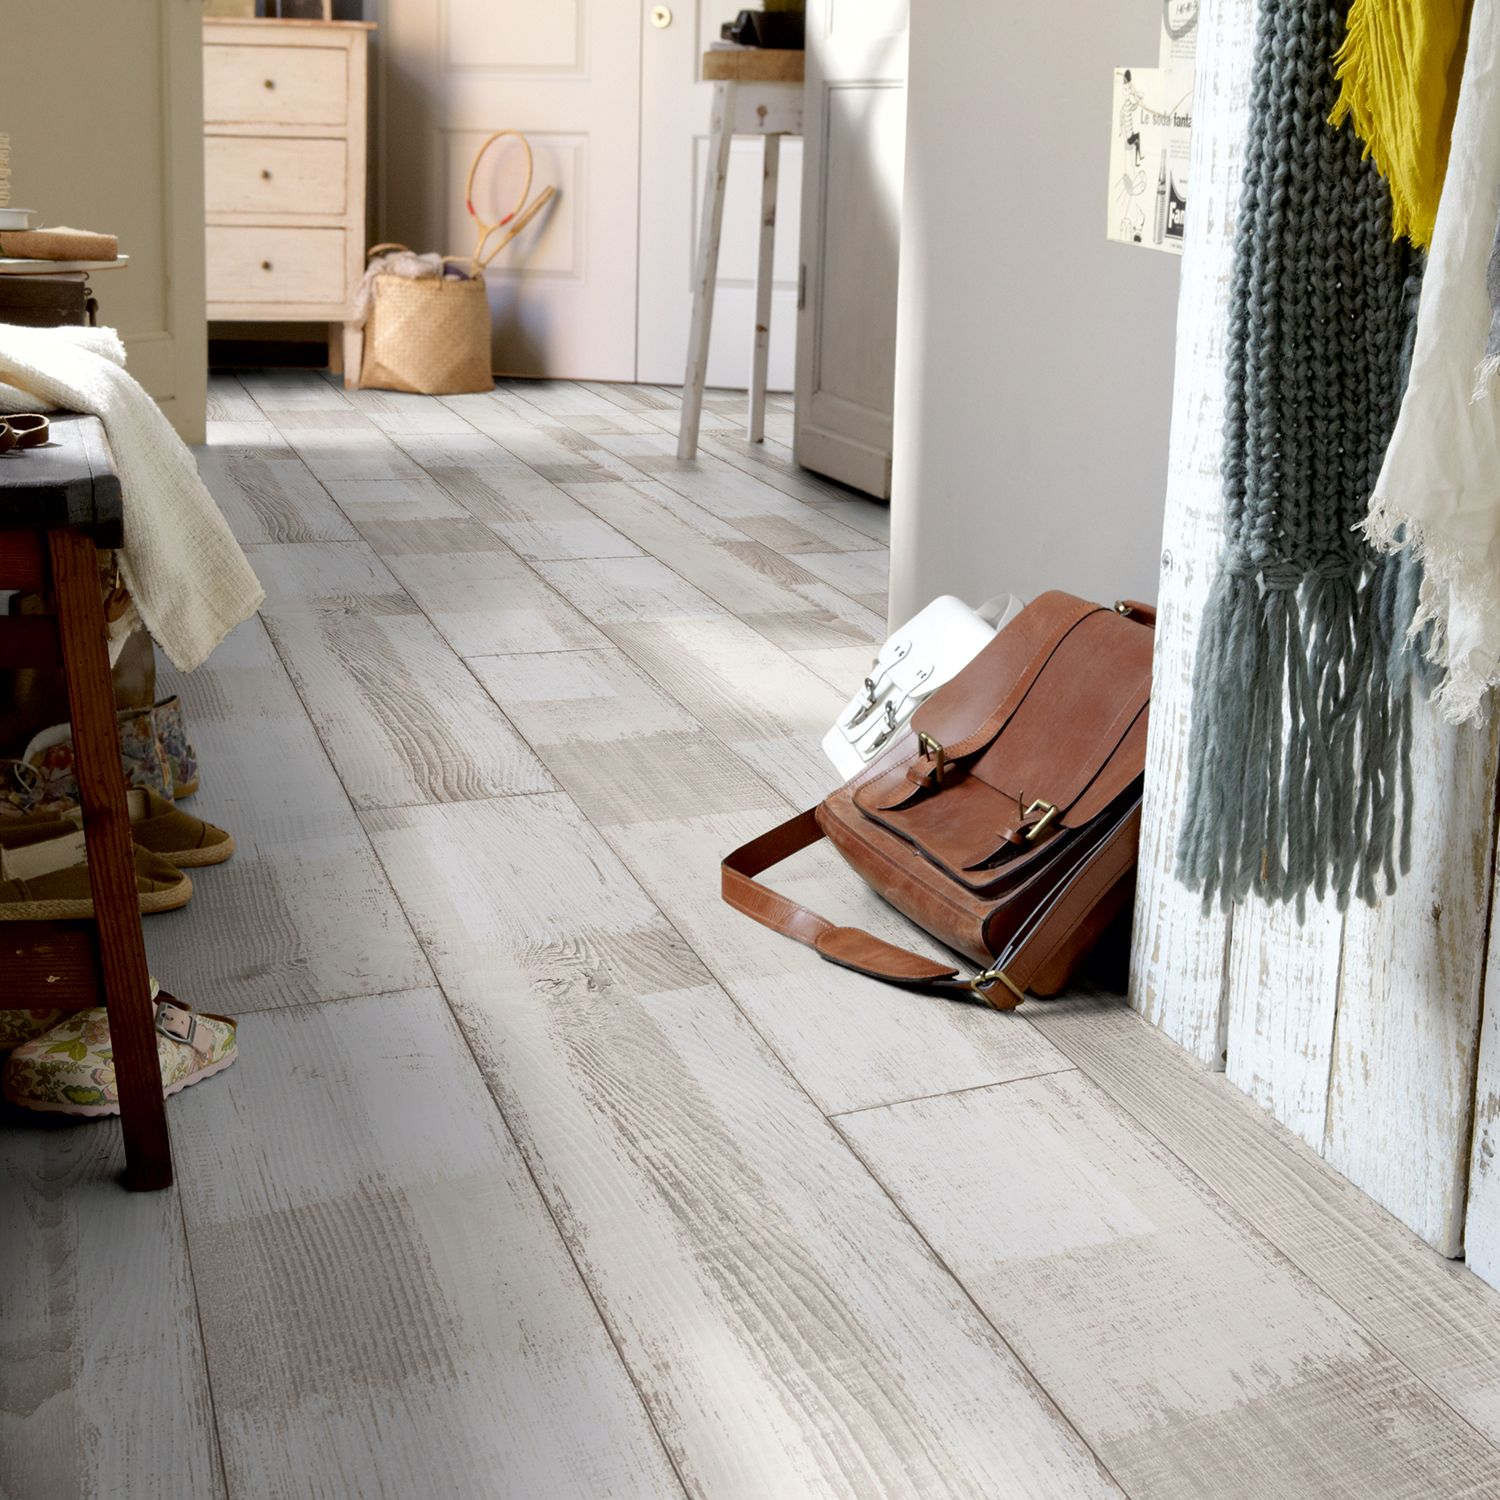 rhino style patched white wood effect vinyl flooring - Wood Vinyl Flooring